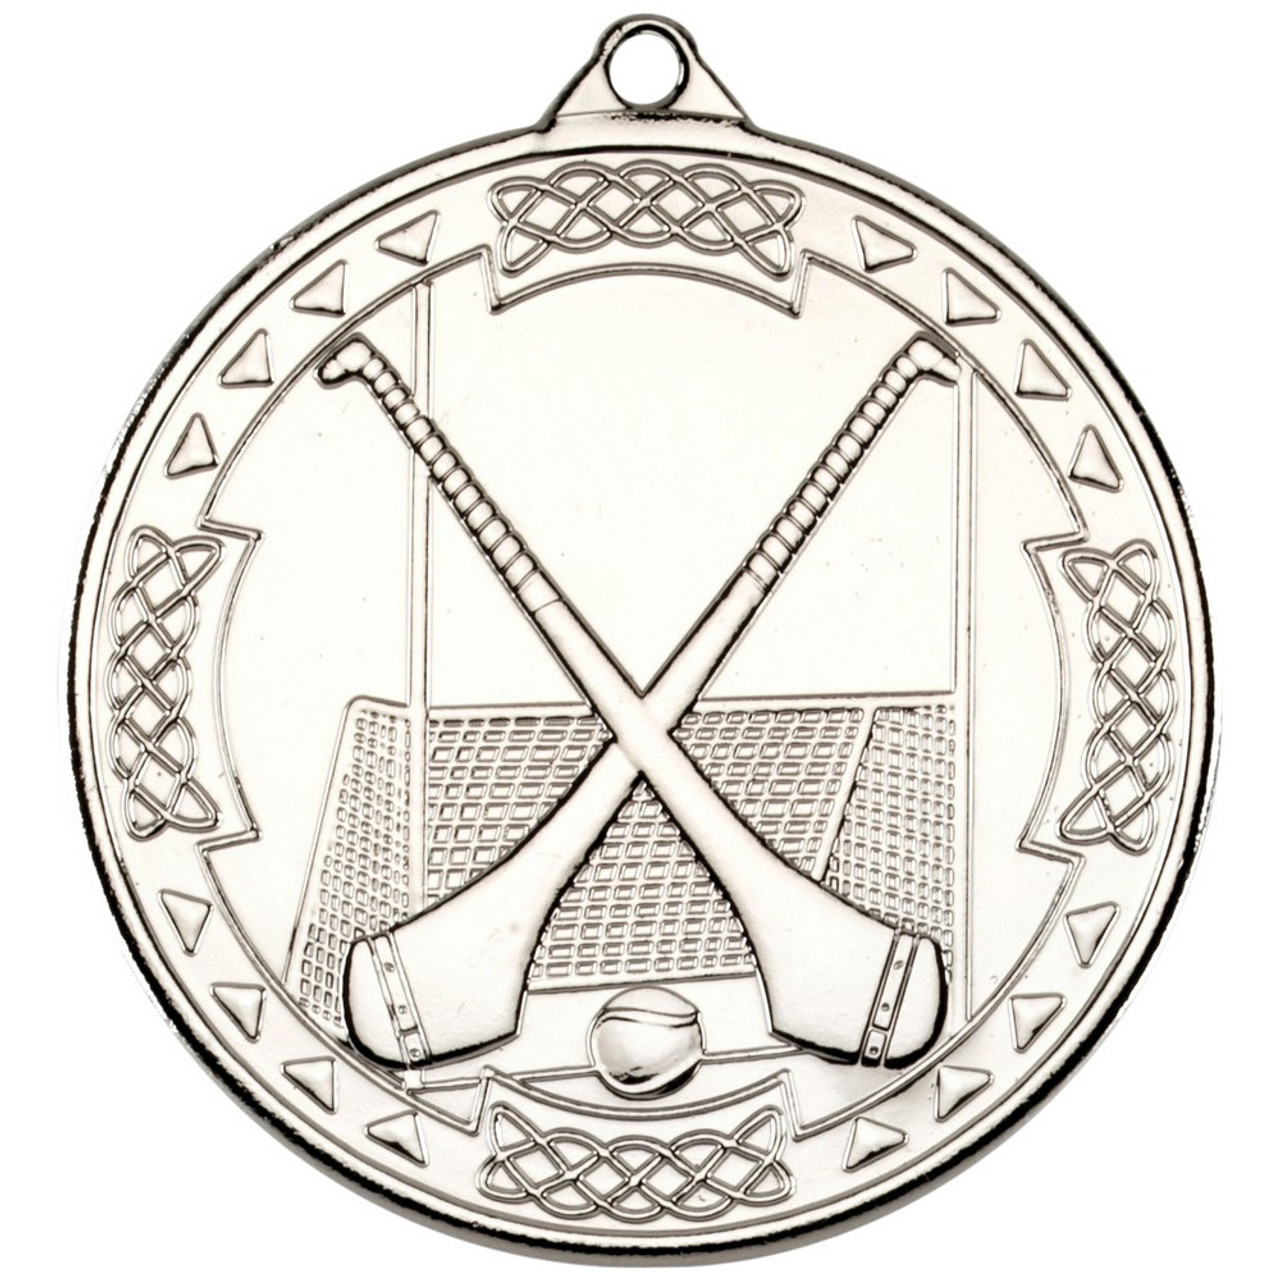 50mm Silver Hurling Medal Award